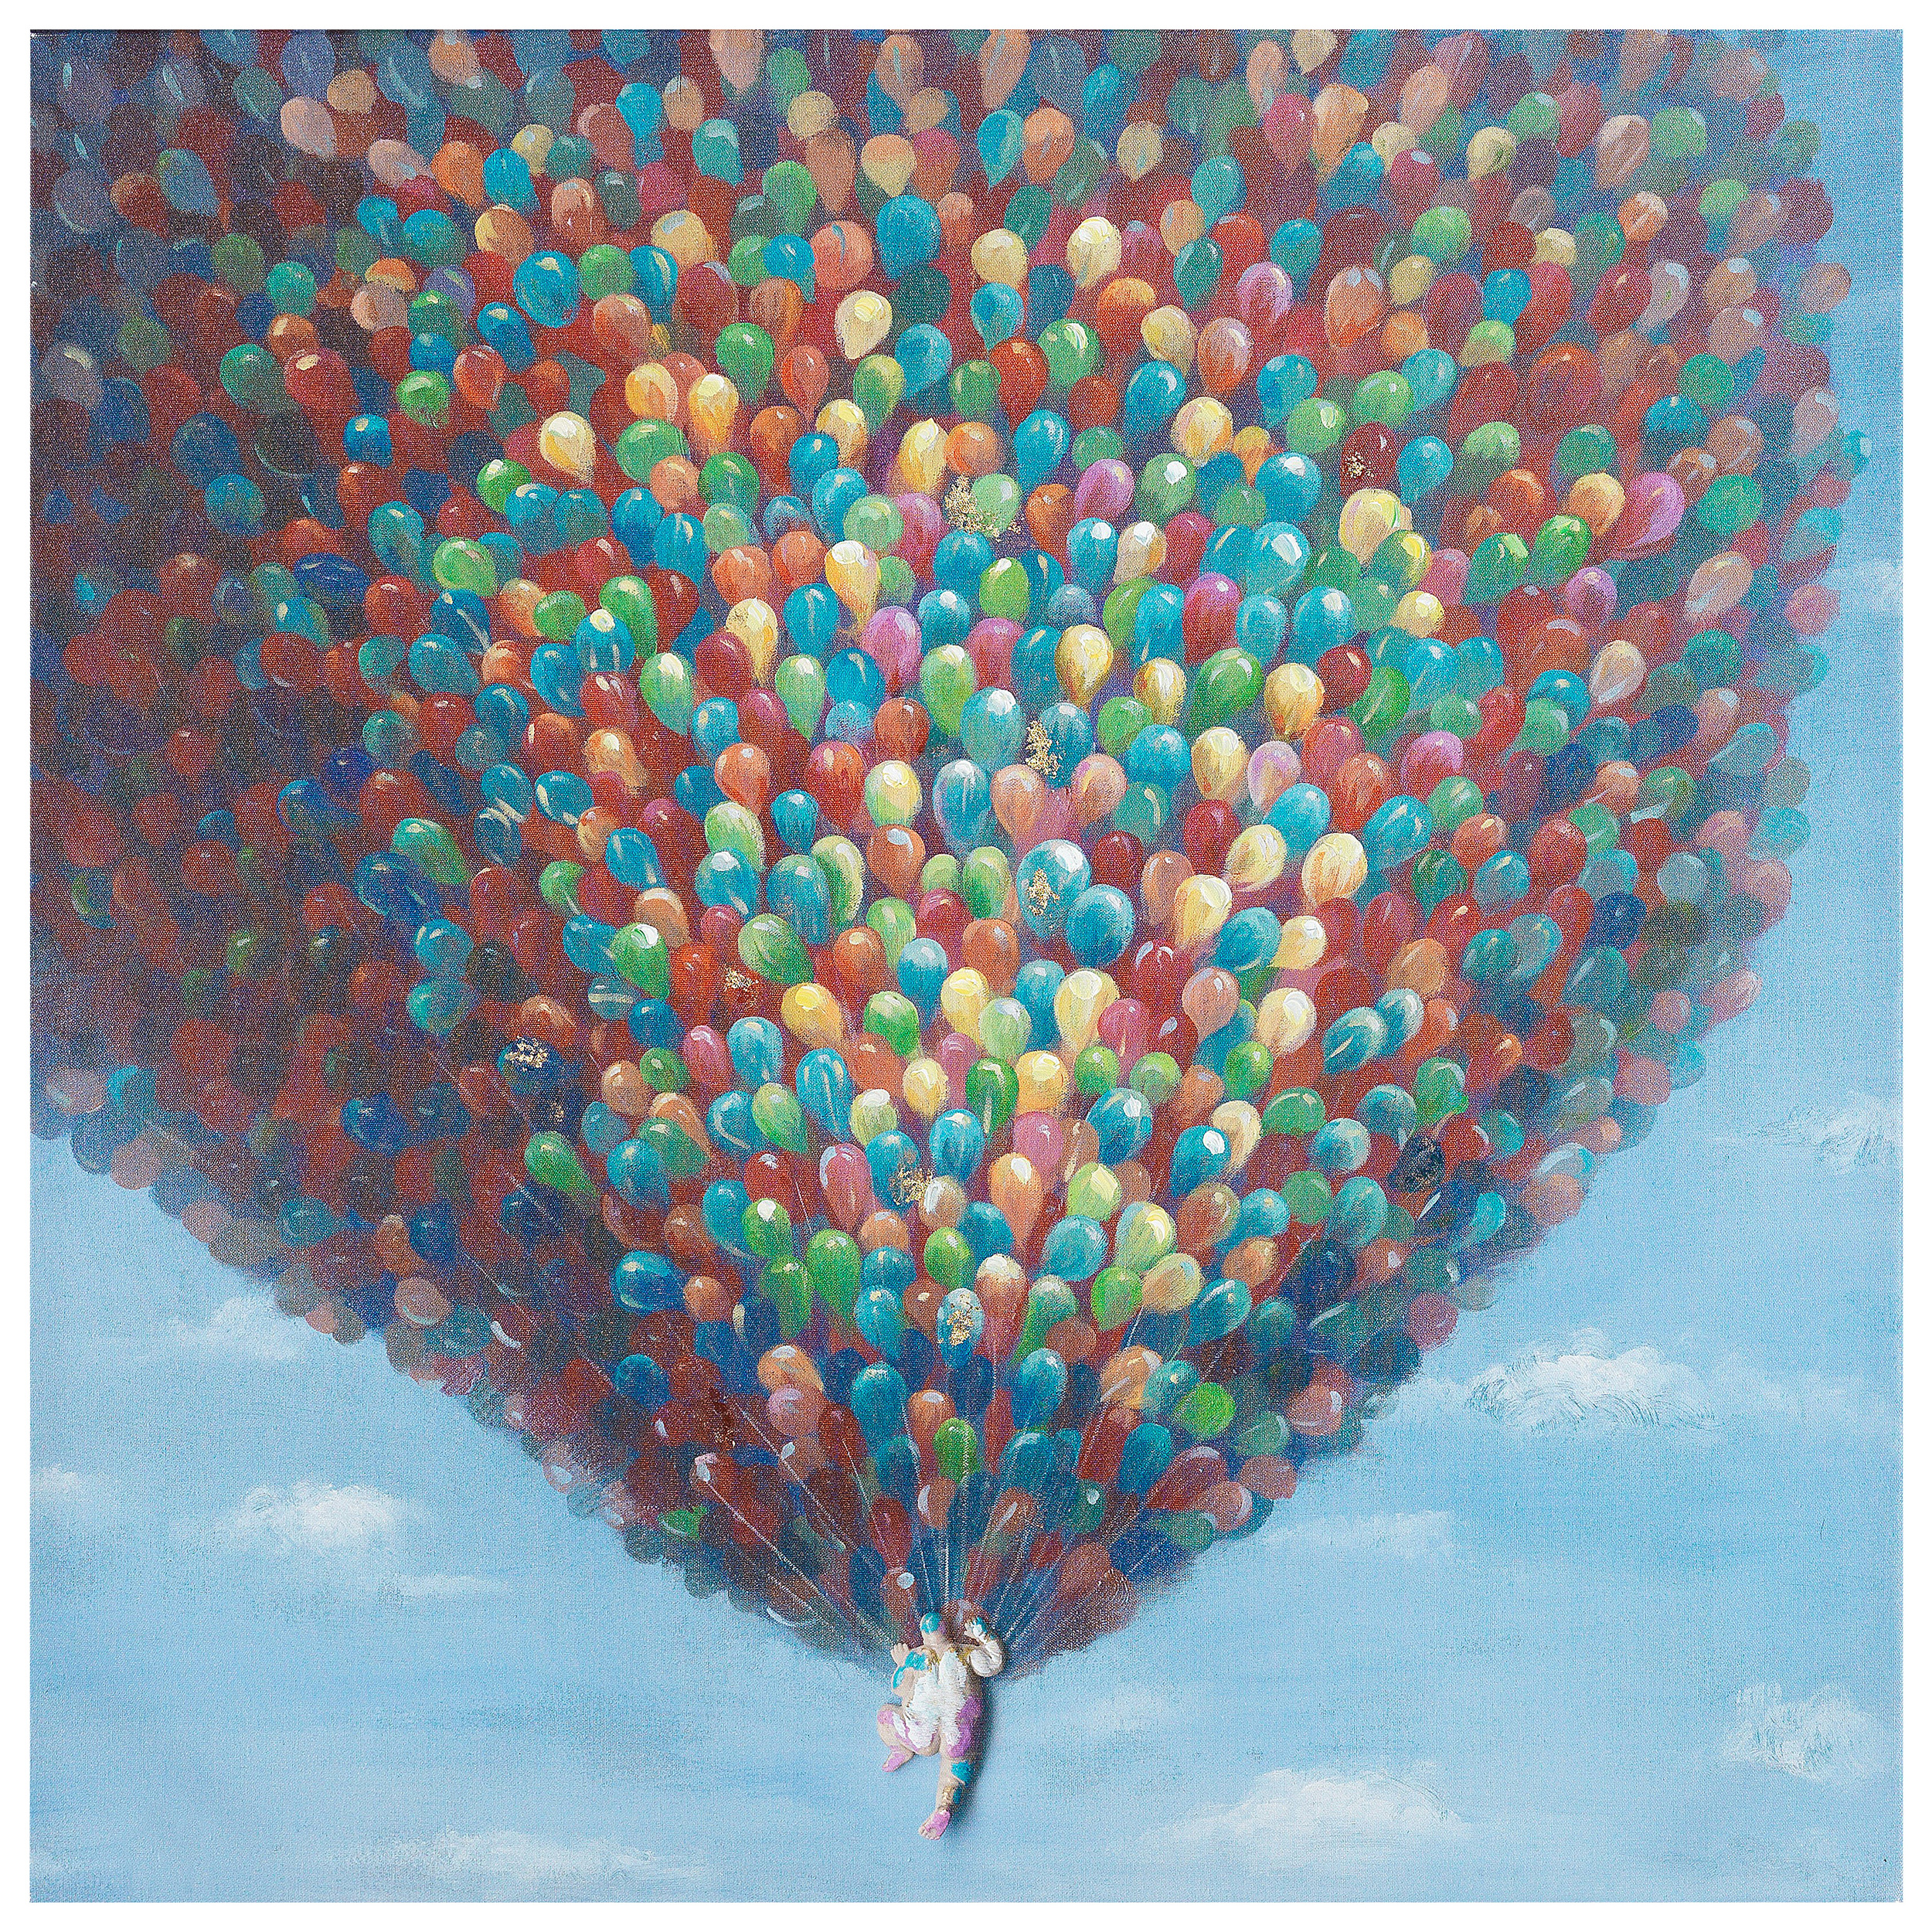 €66 OIL PAINTING WITH BALLOONS 80X80